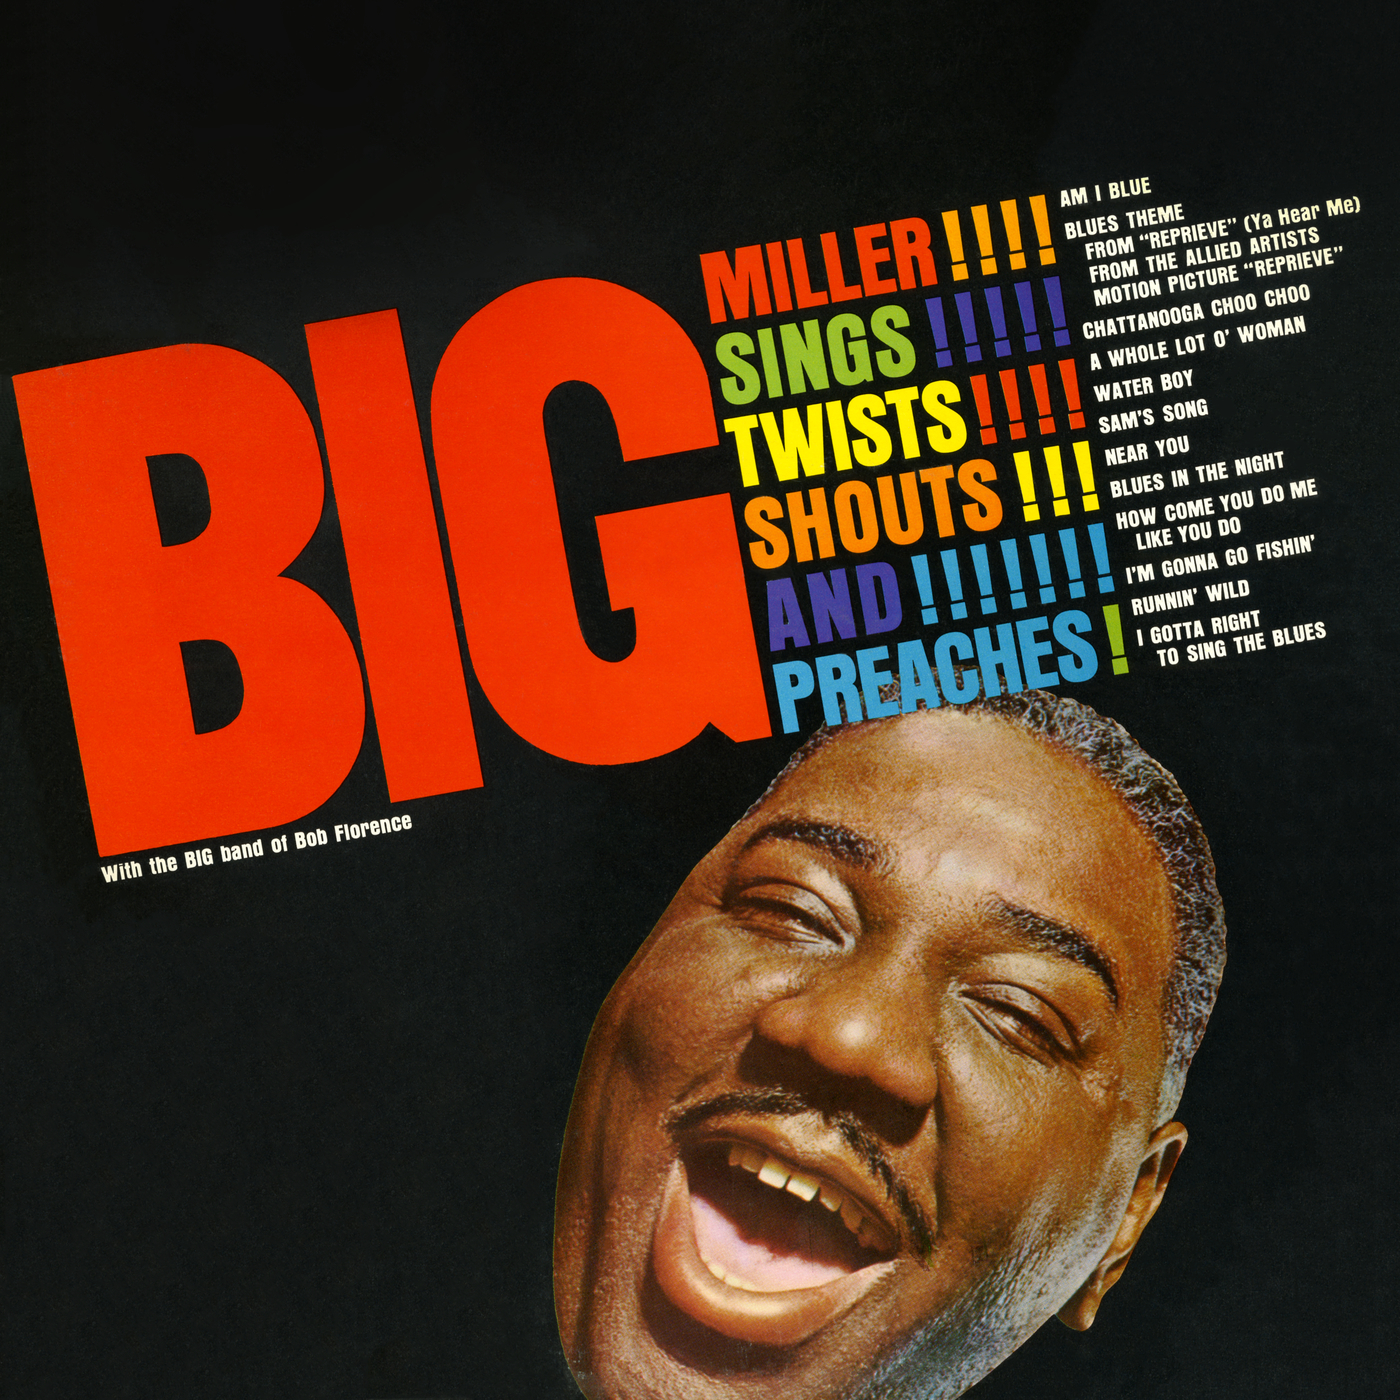 Sings, Twists, Shouts & Preaches - Big Miller